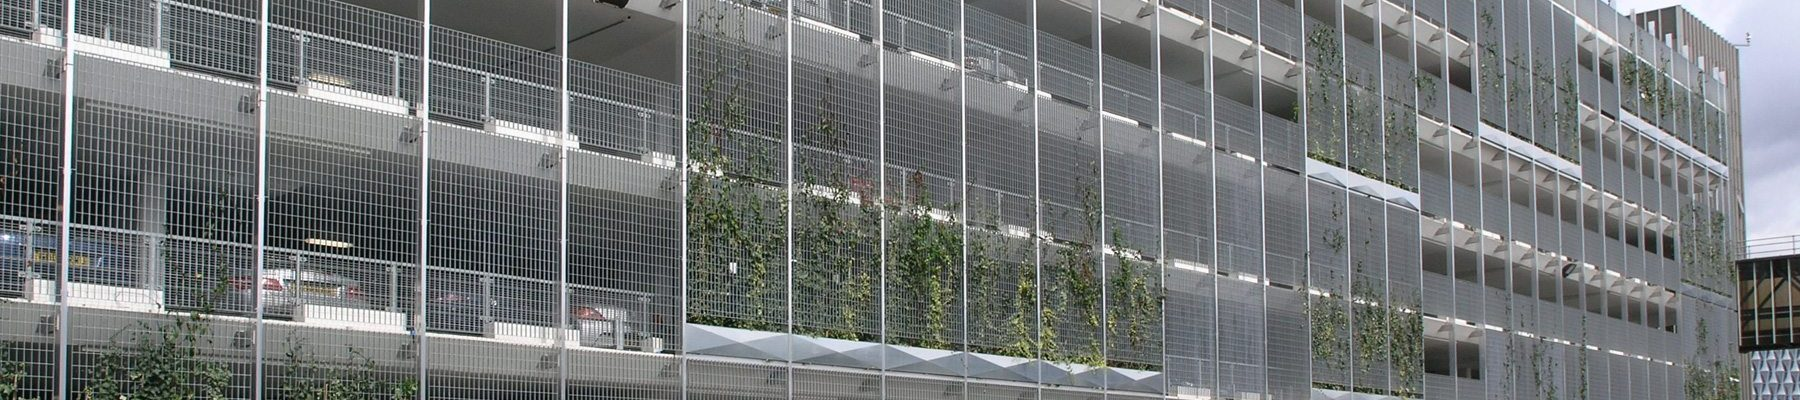 Stero-3-grating-car-park-cladding-green-wall-new-covent-garden-banner-2